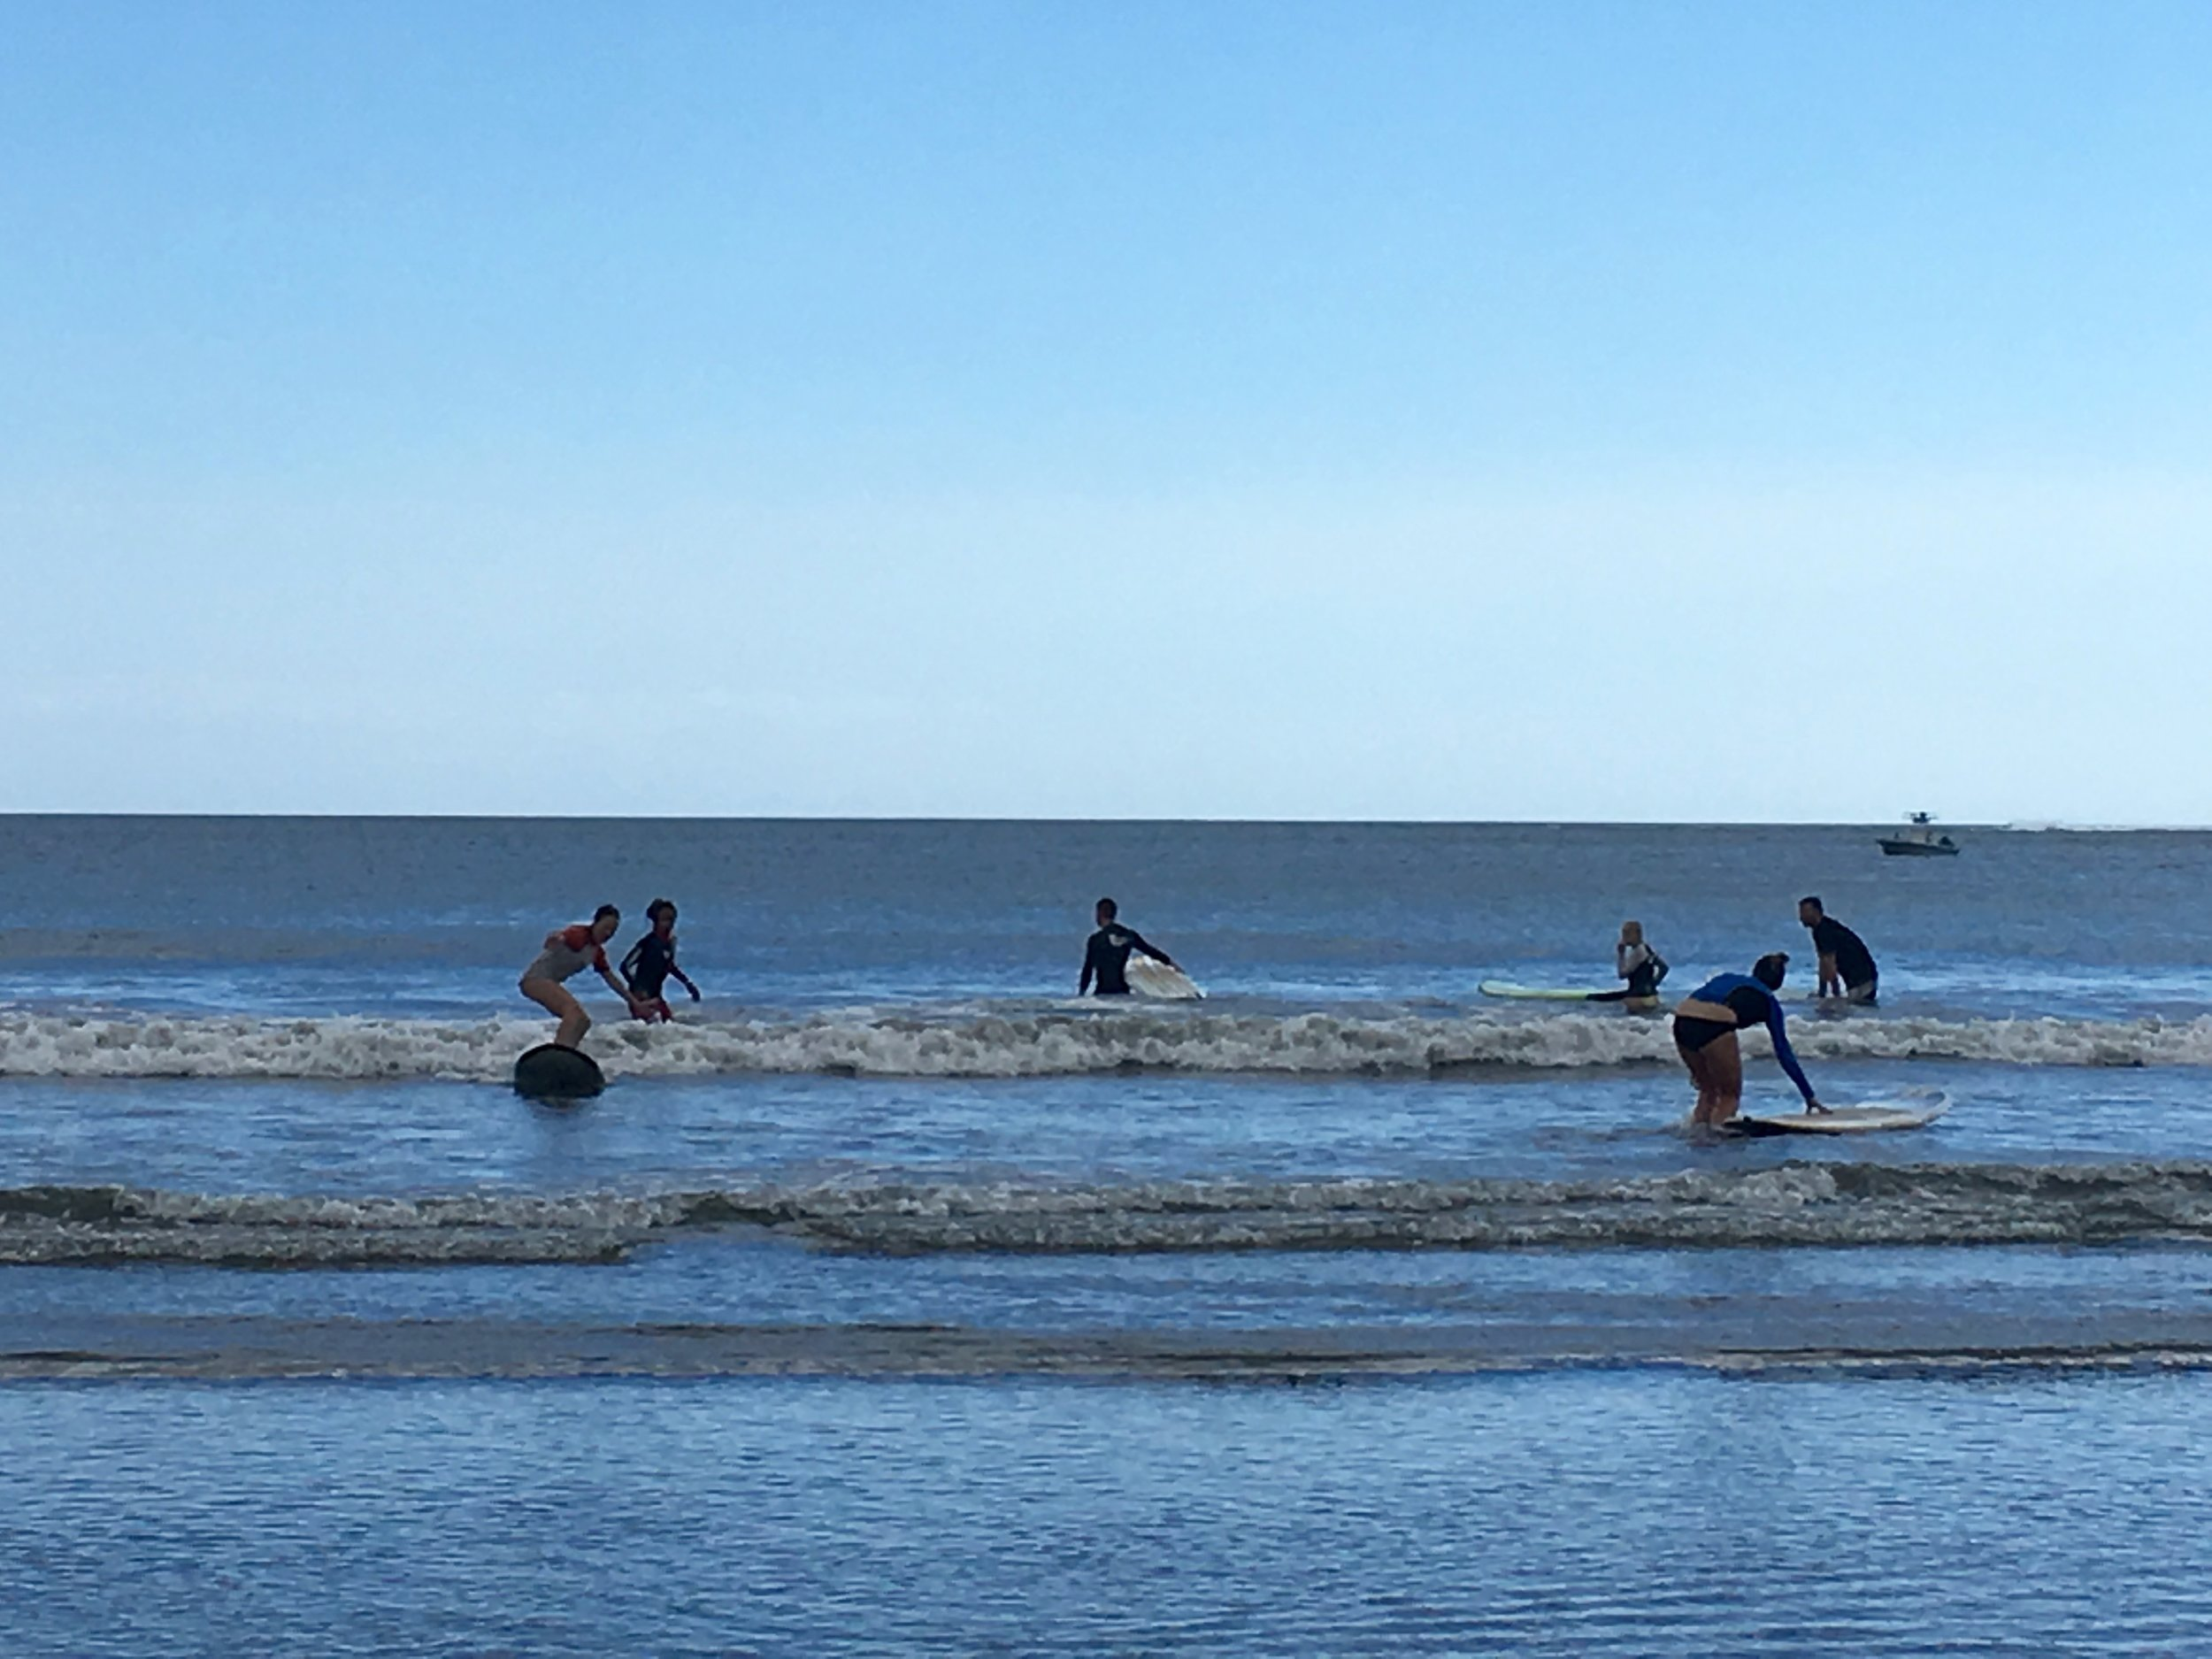 The crew out surfing Monday morning before the first day of work